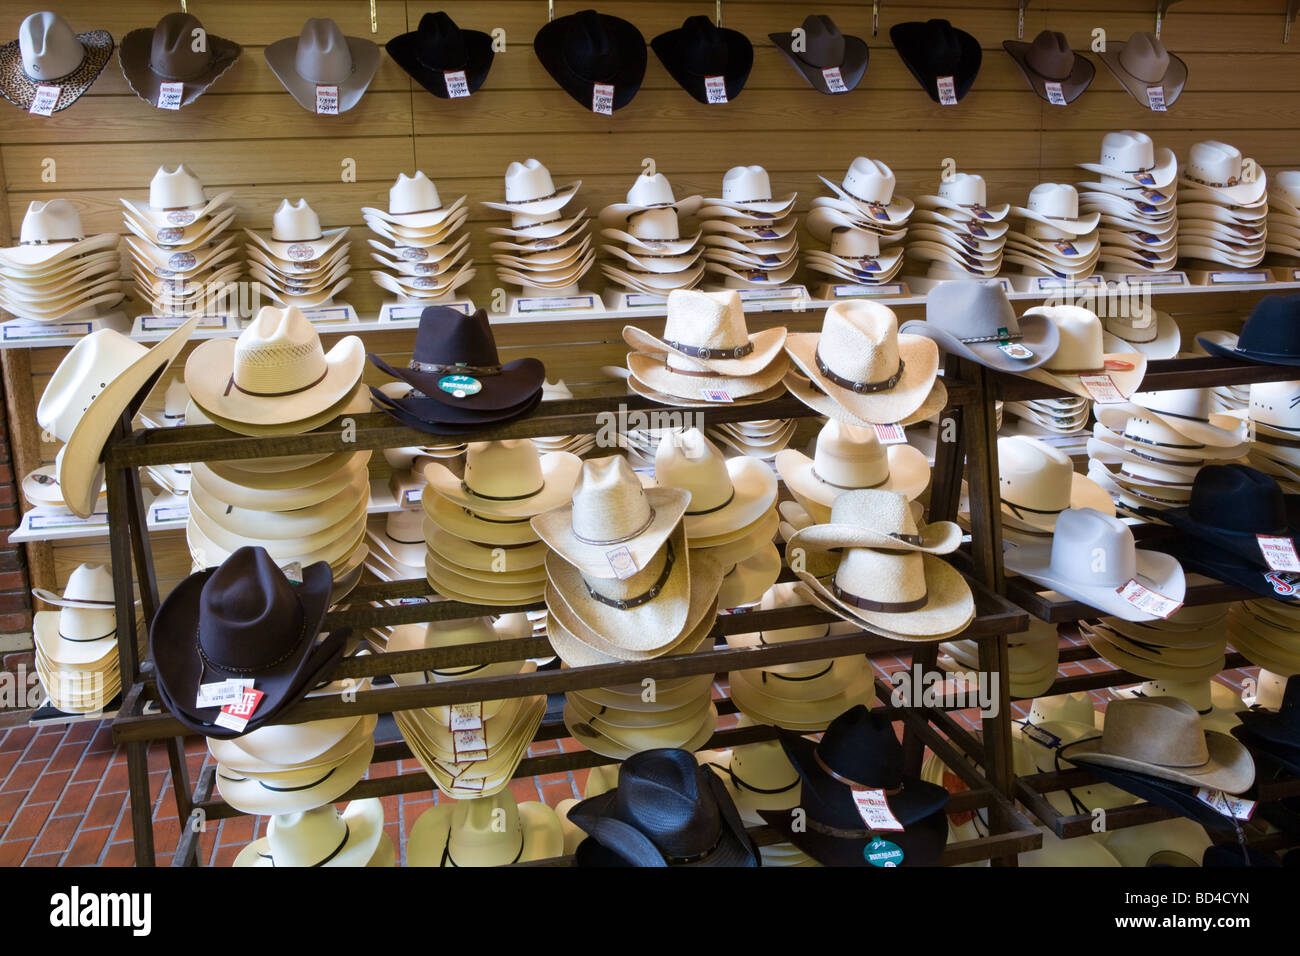 abbc4508c7d71 Cowboy hats for sale at the Wrangler western wear store in Cheyenne Wyoming  - Stock Image